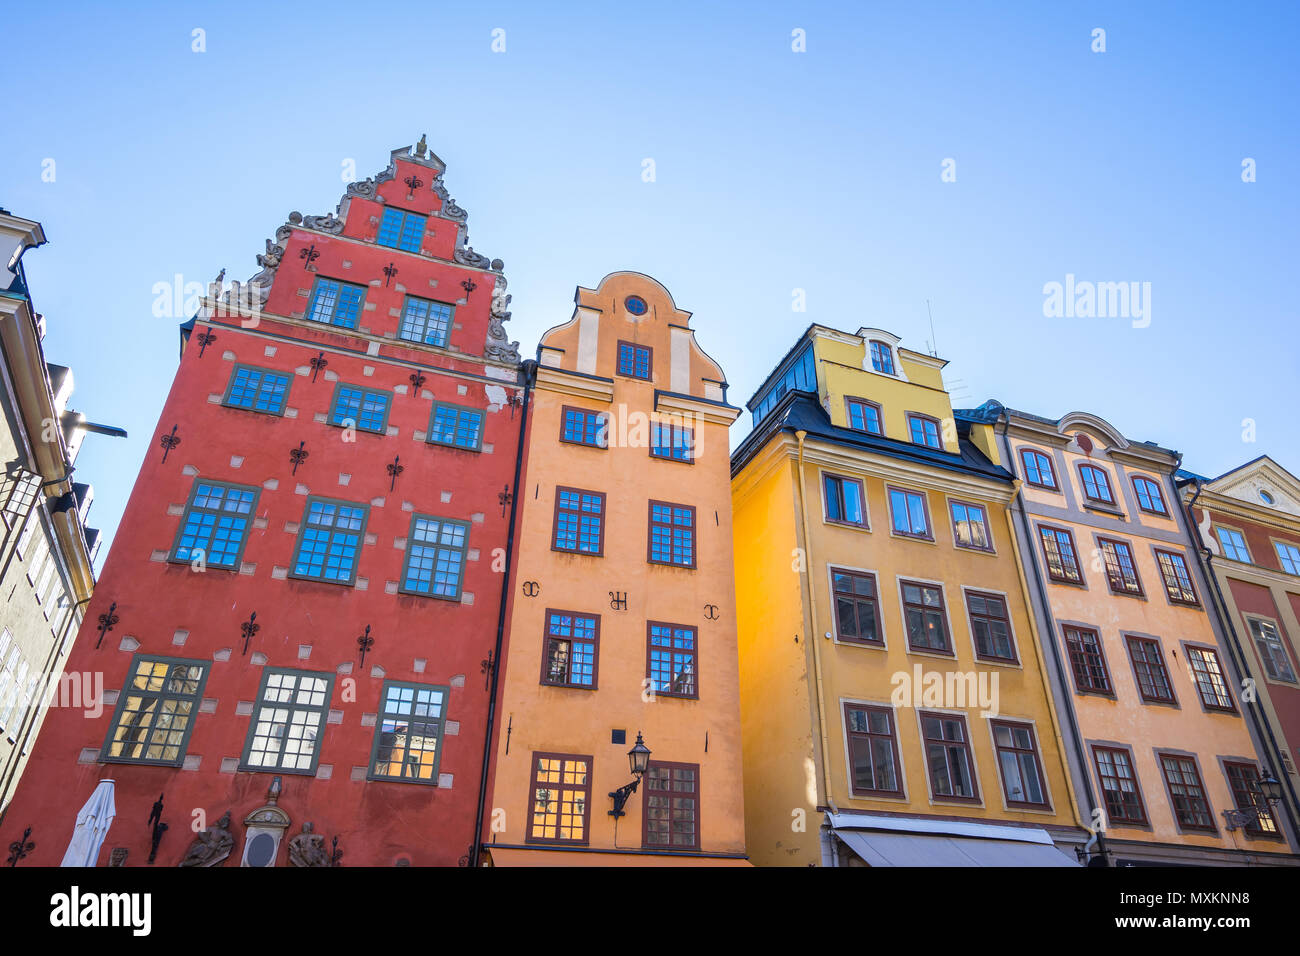 Gamla Stan old town in Stockholm city, Sweden. - Stock Image